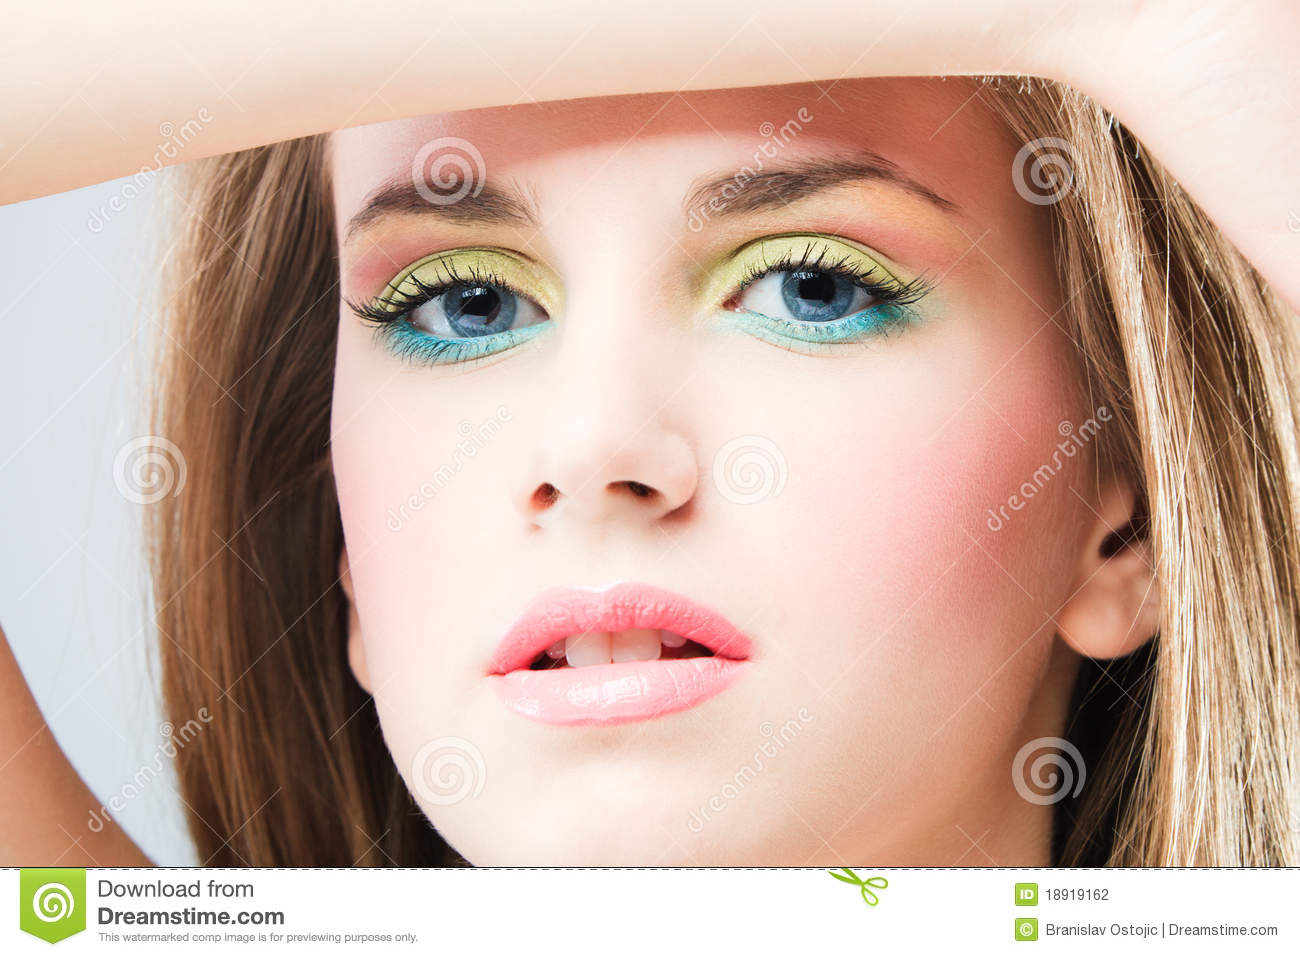 Http Www Dreamstime Com Stock Photography Teen Beauty Image18919162